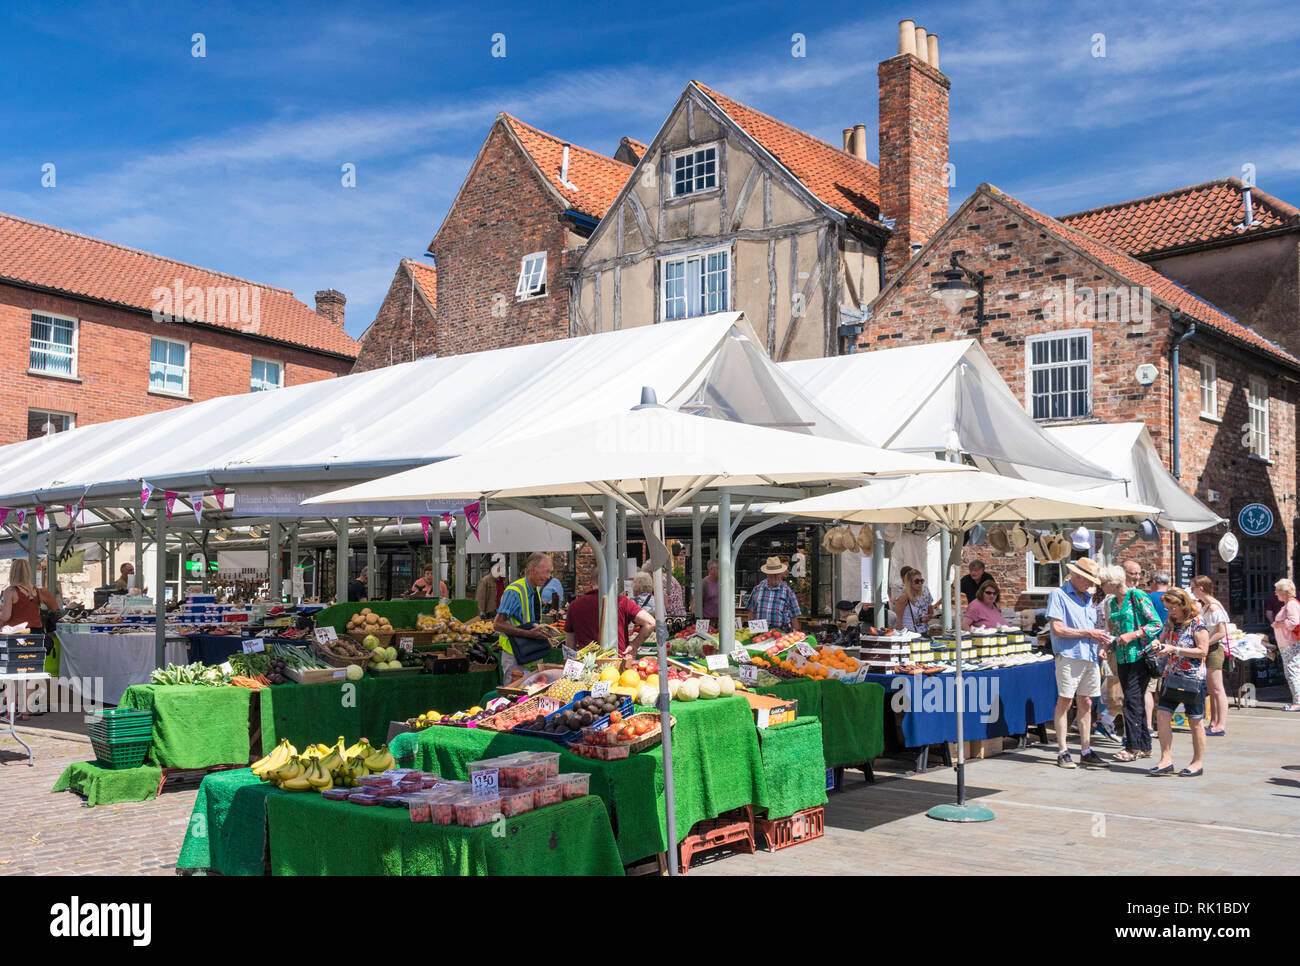 People shopping around a greengrocers fruit and veg stall in the Shambles Market York city centre York  North Yorkshire England GB UK EU Europe - Stock Image